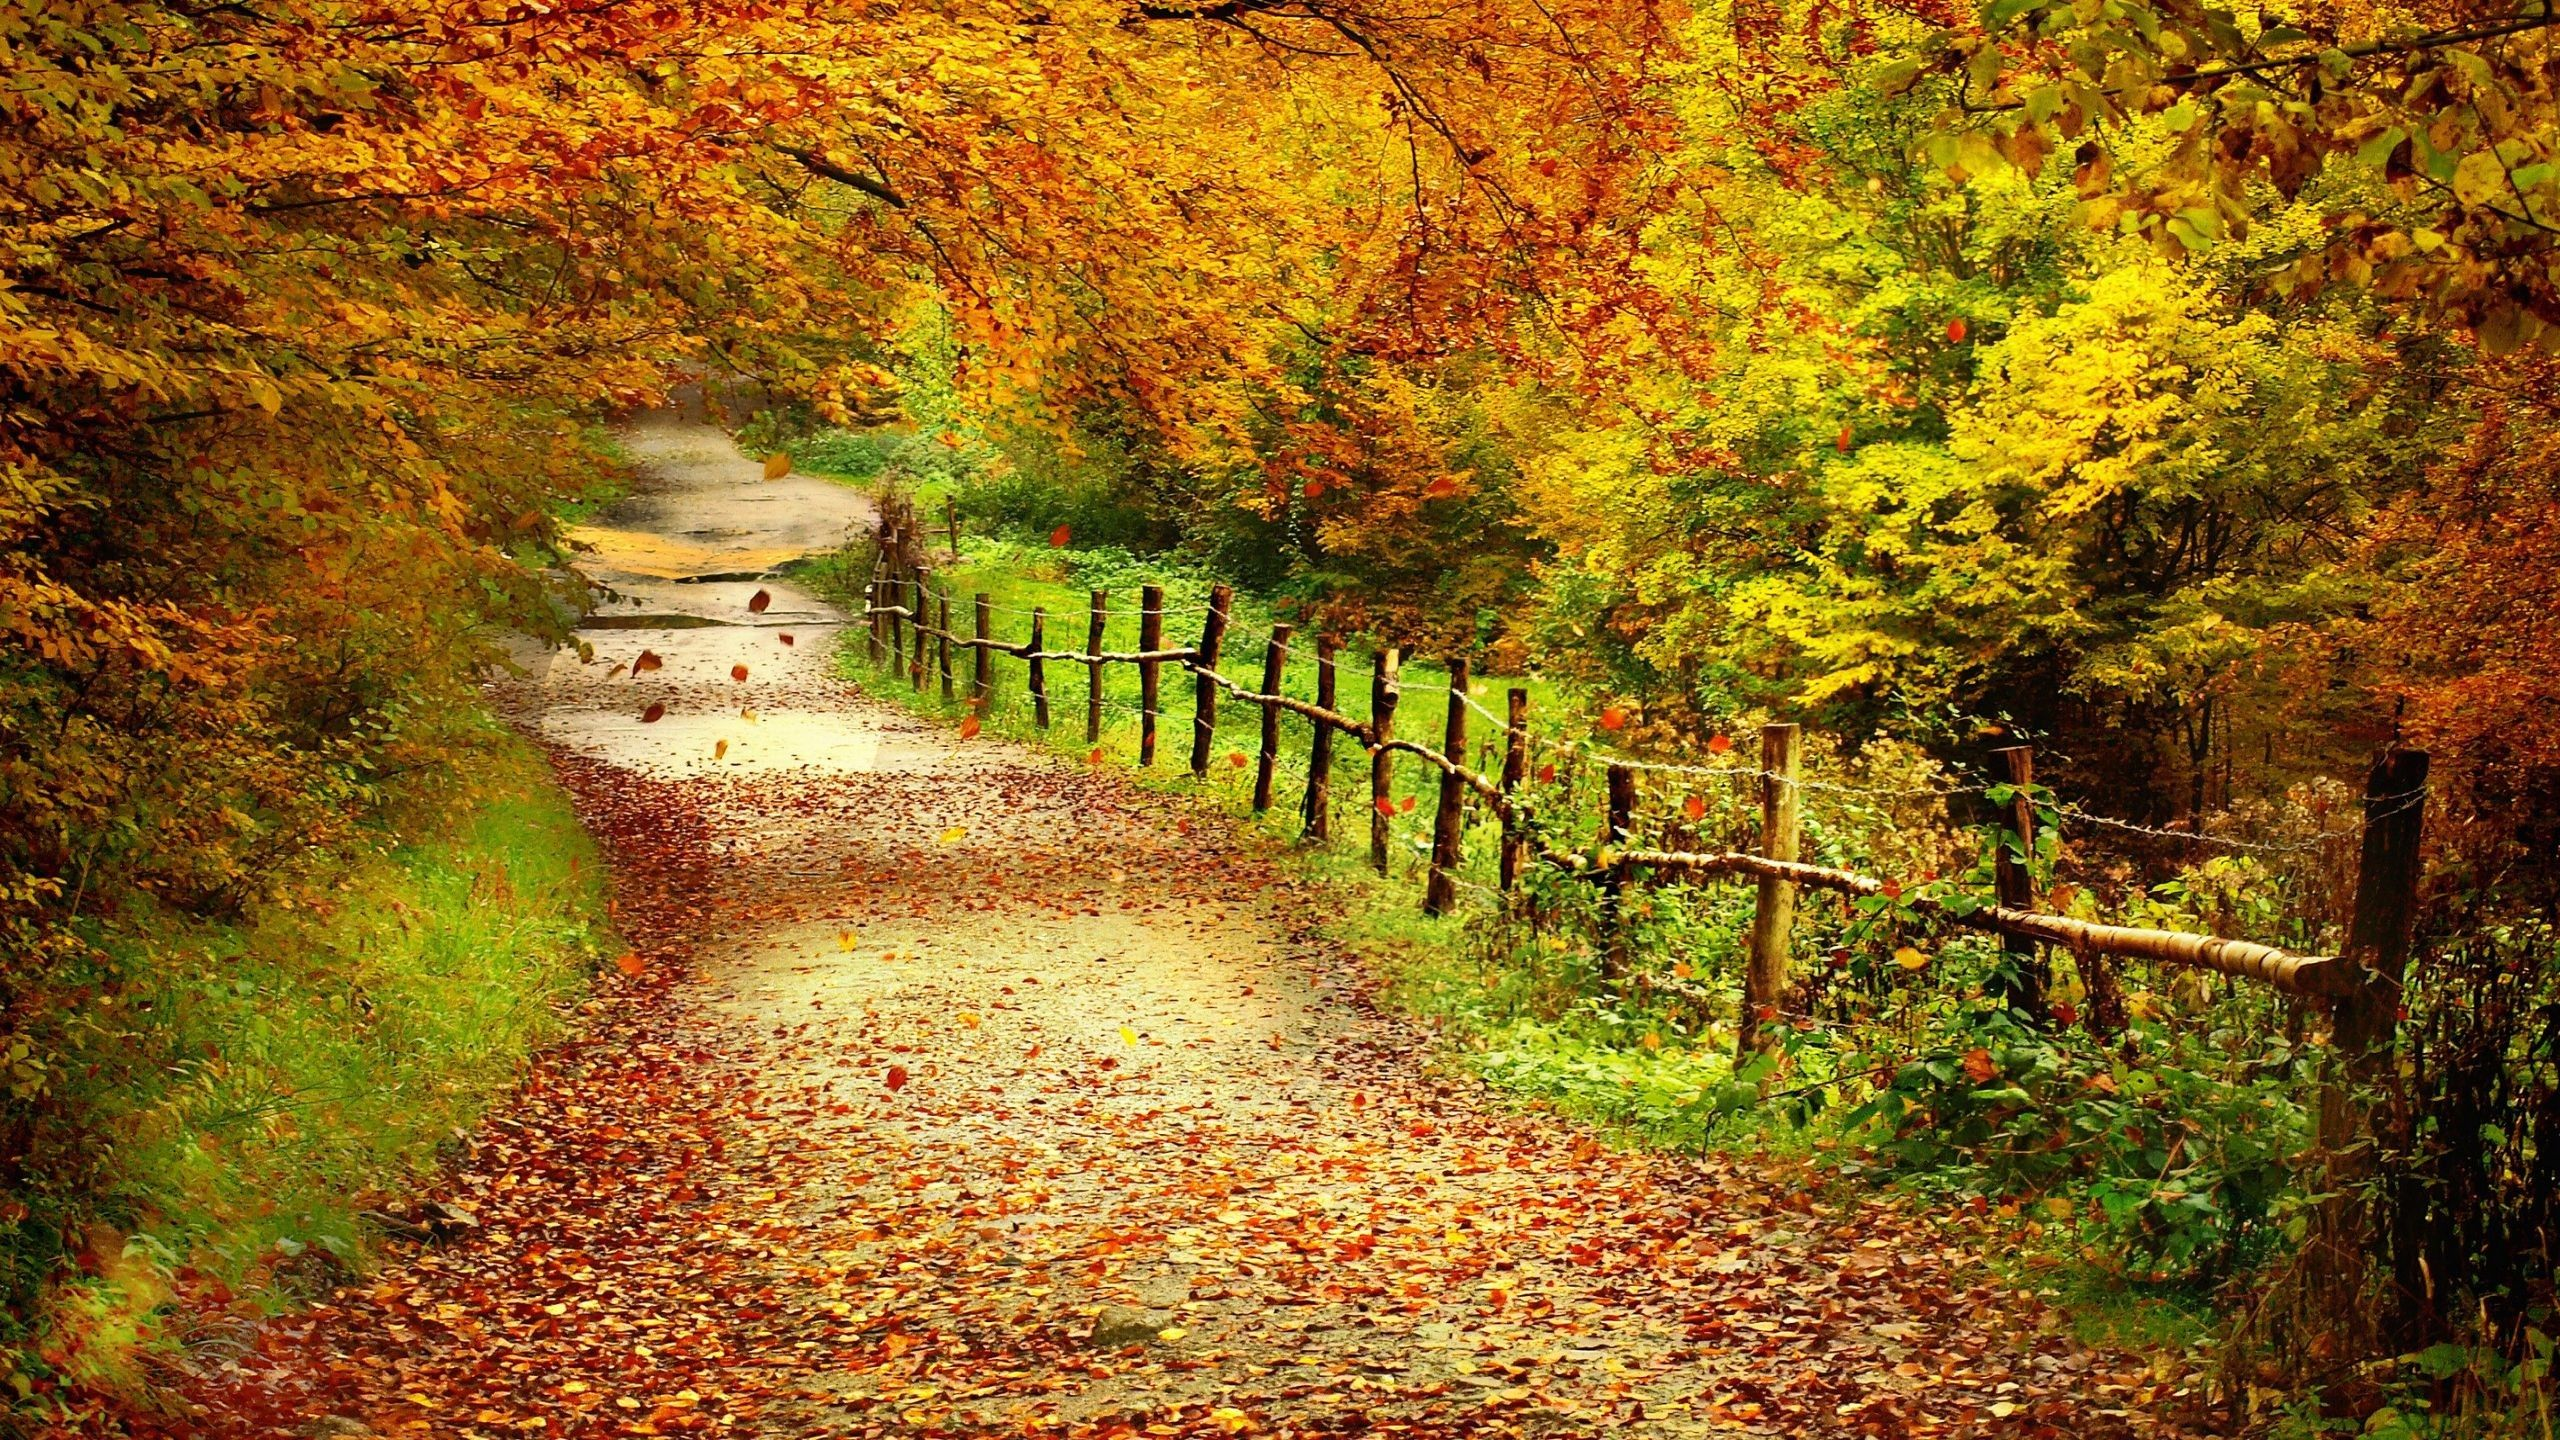 Fall landscape wallpaper desktop danasrgf.top Autumn